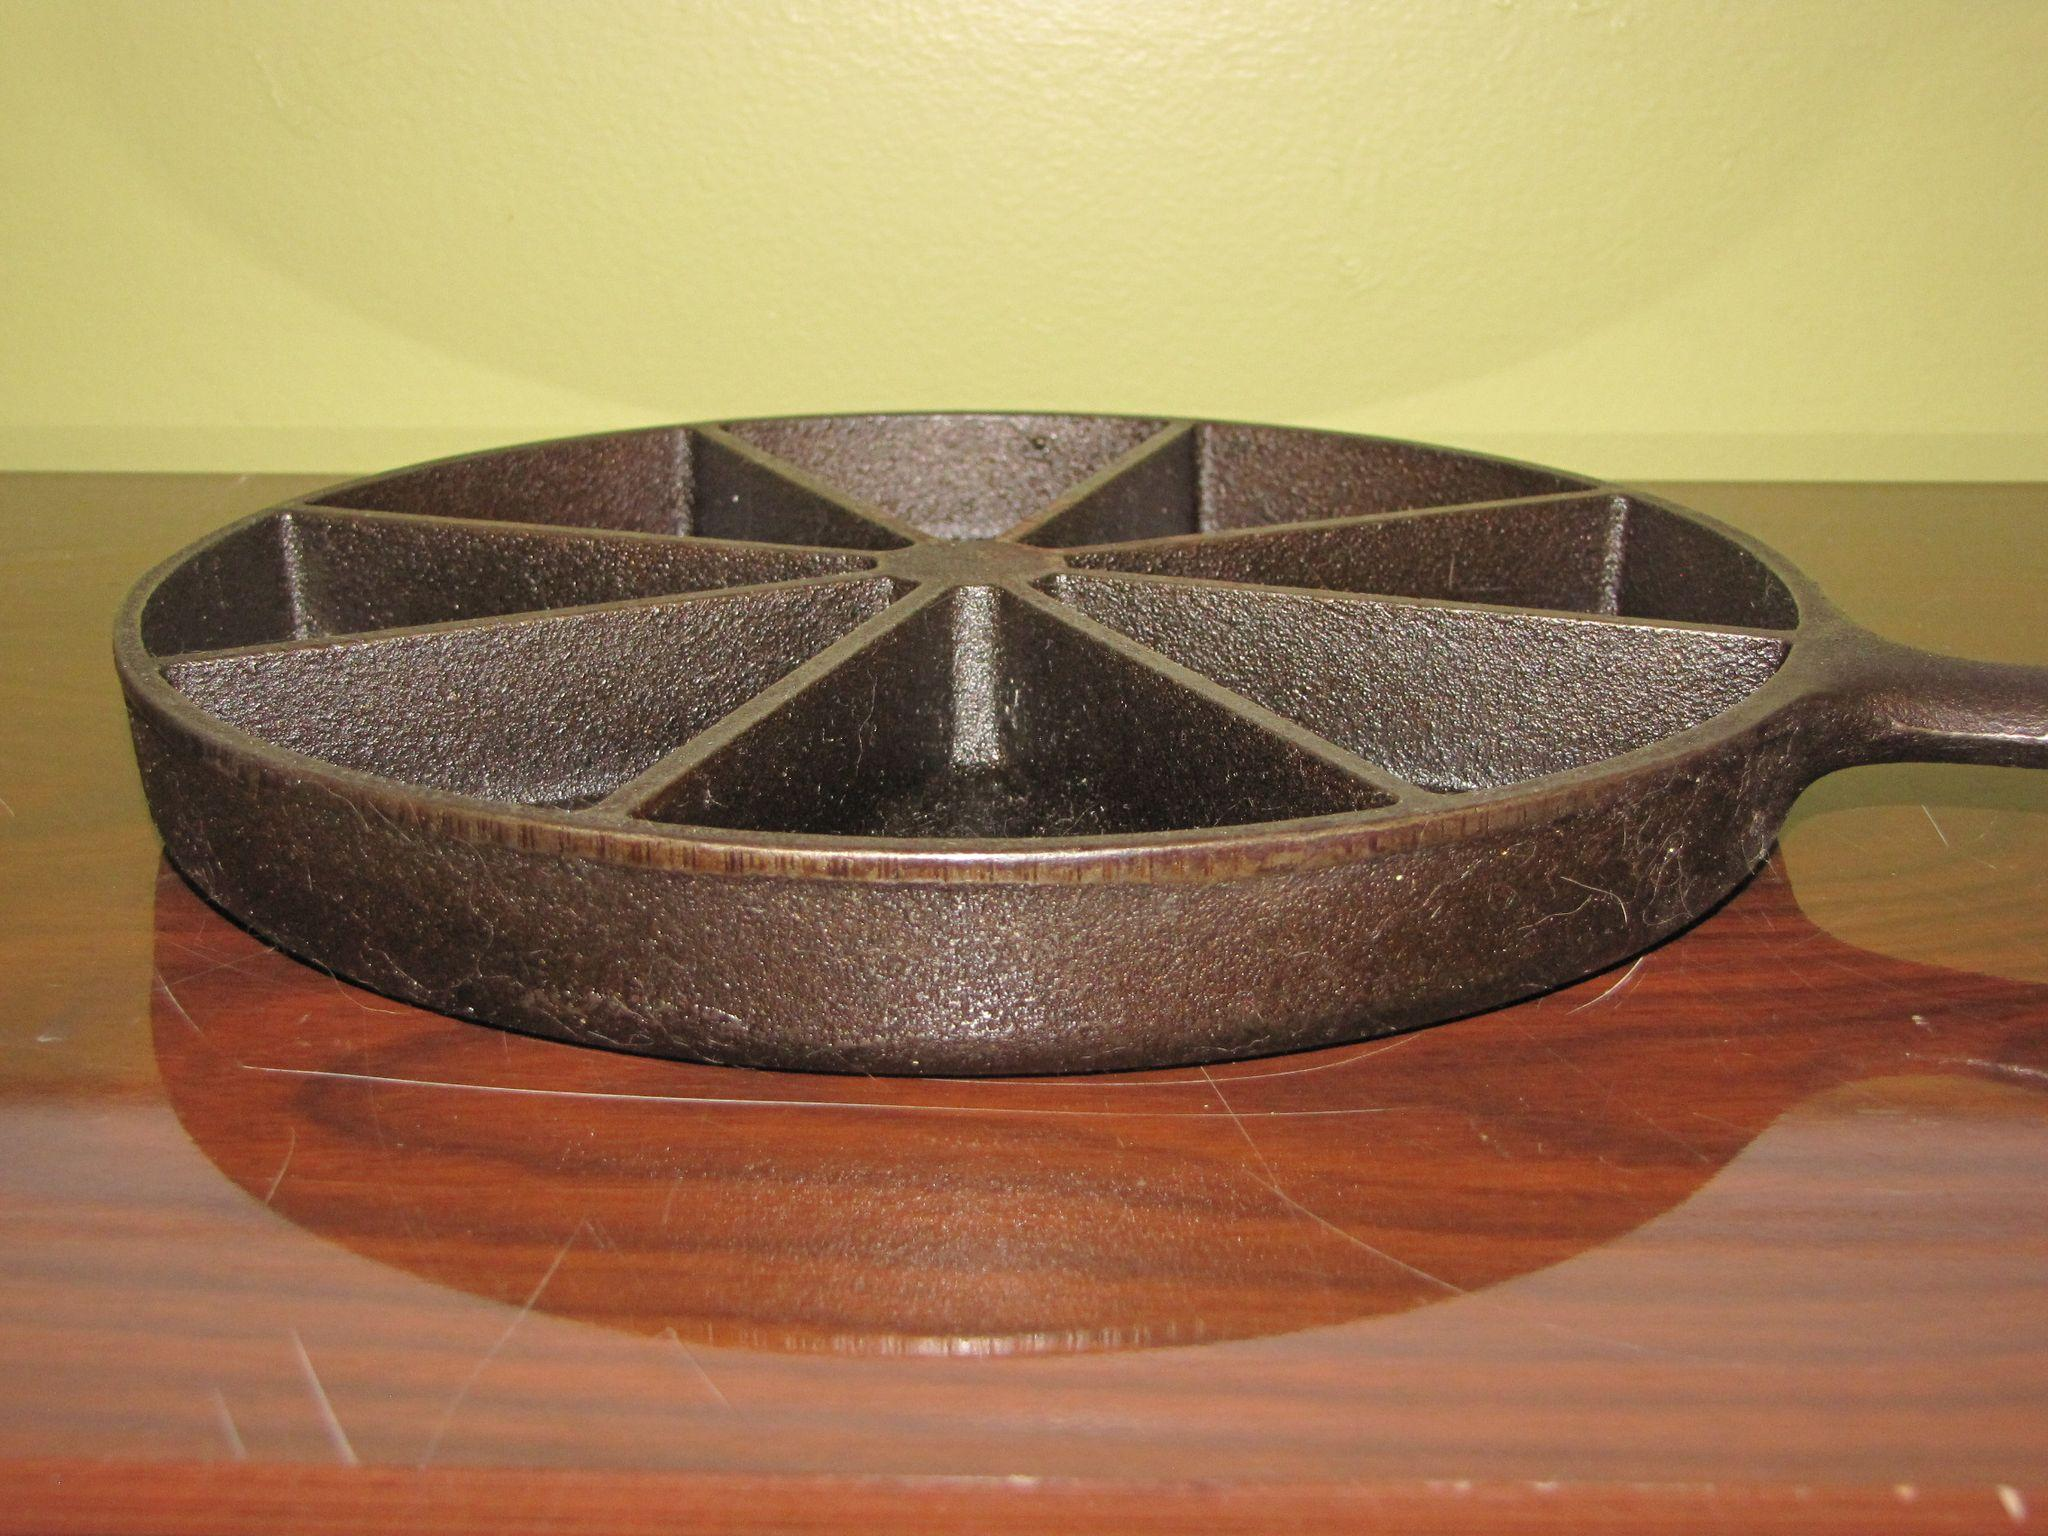 ... cast iron cornbread pan wagner ware cast iron cornbread pan from